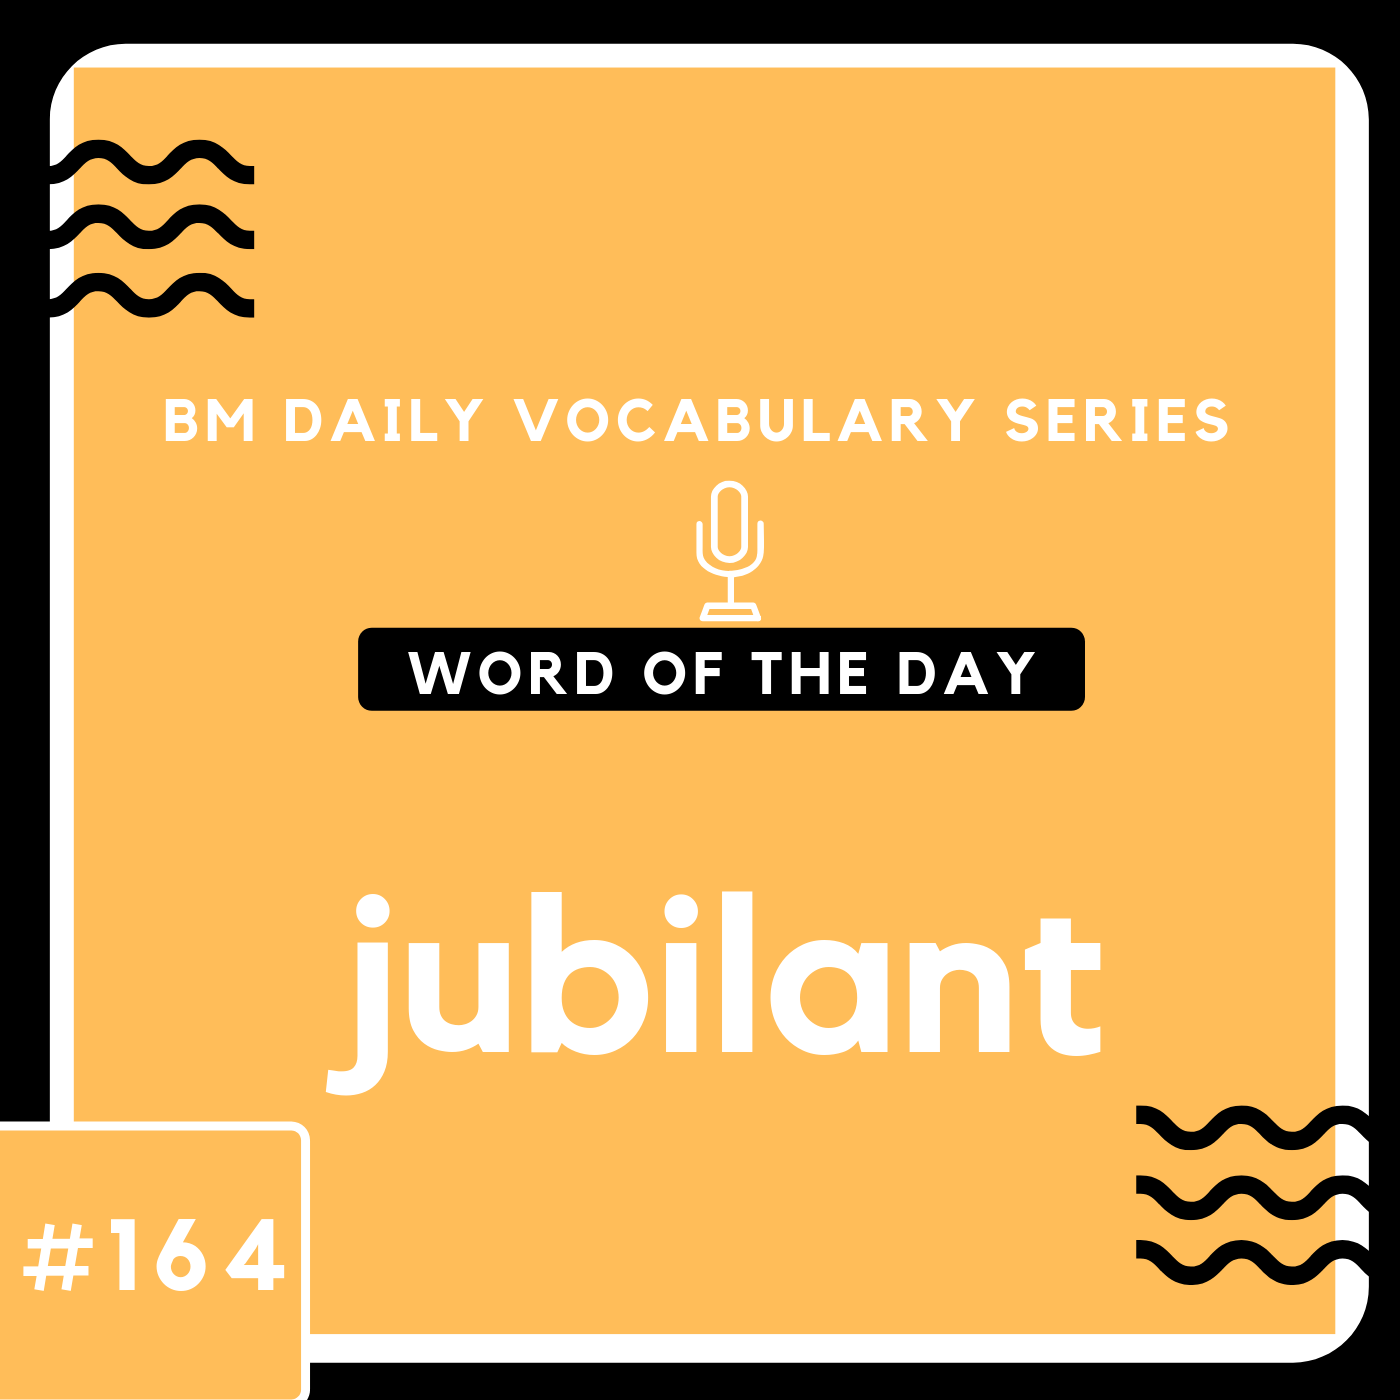 200 BM Daily Vocabulary #164 |  jubilant